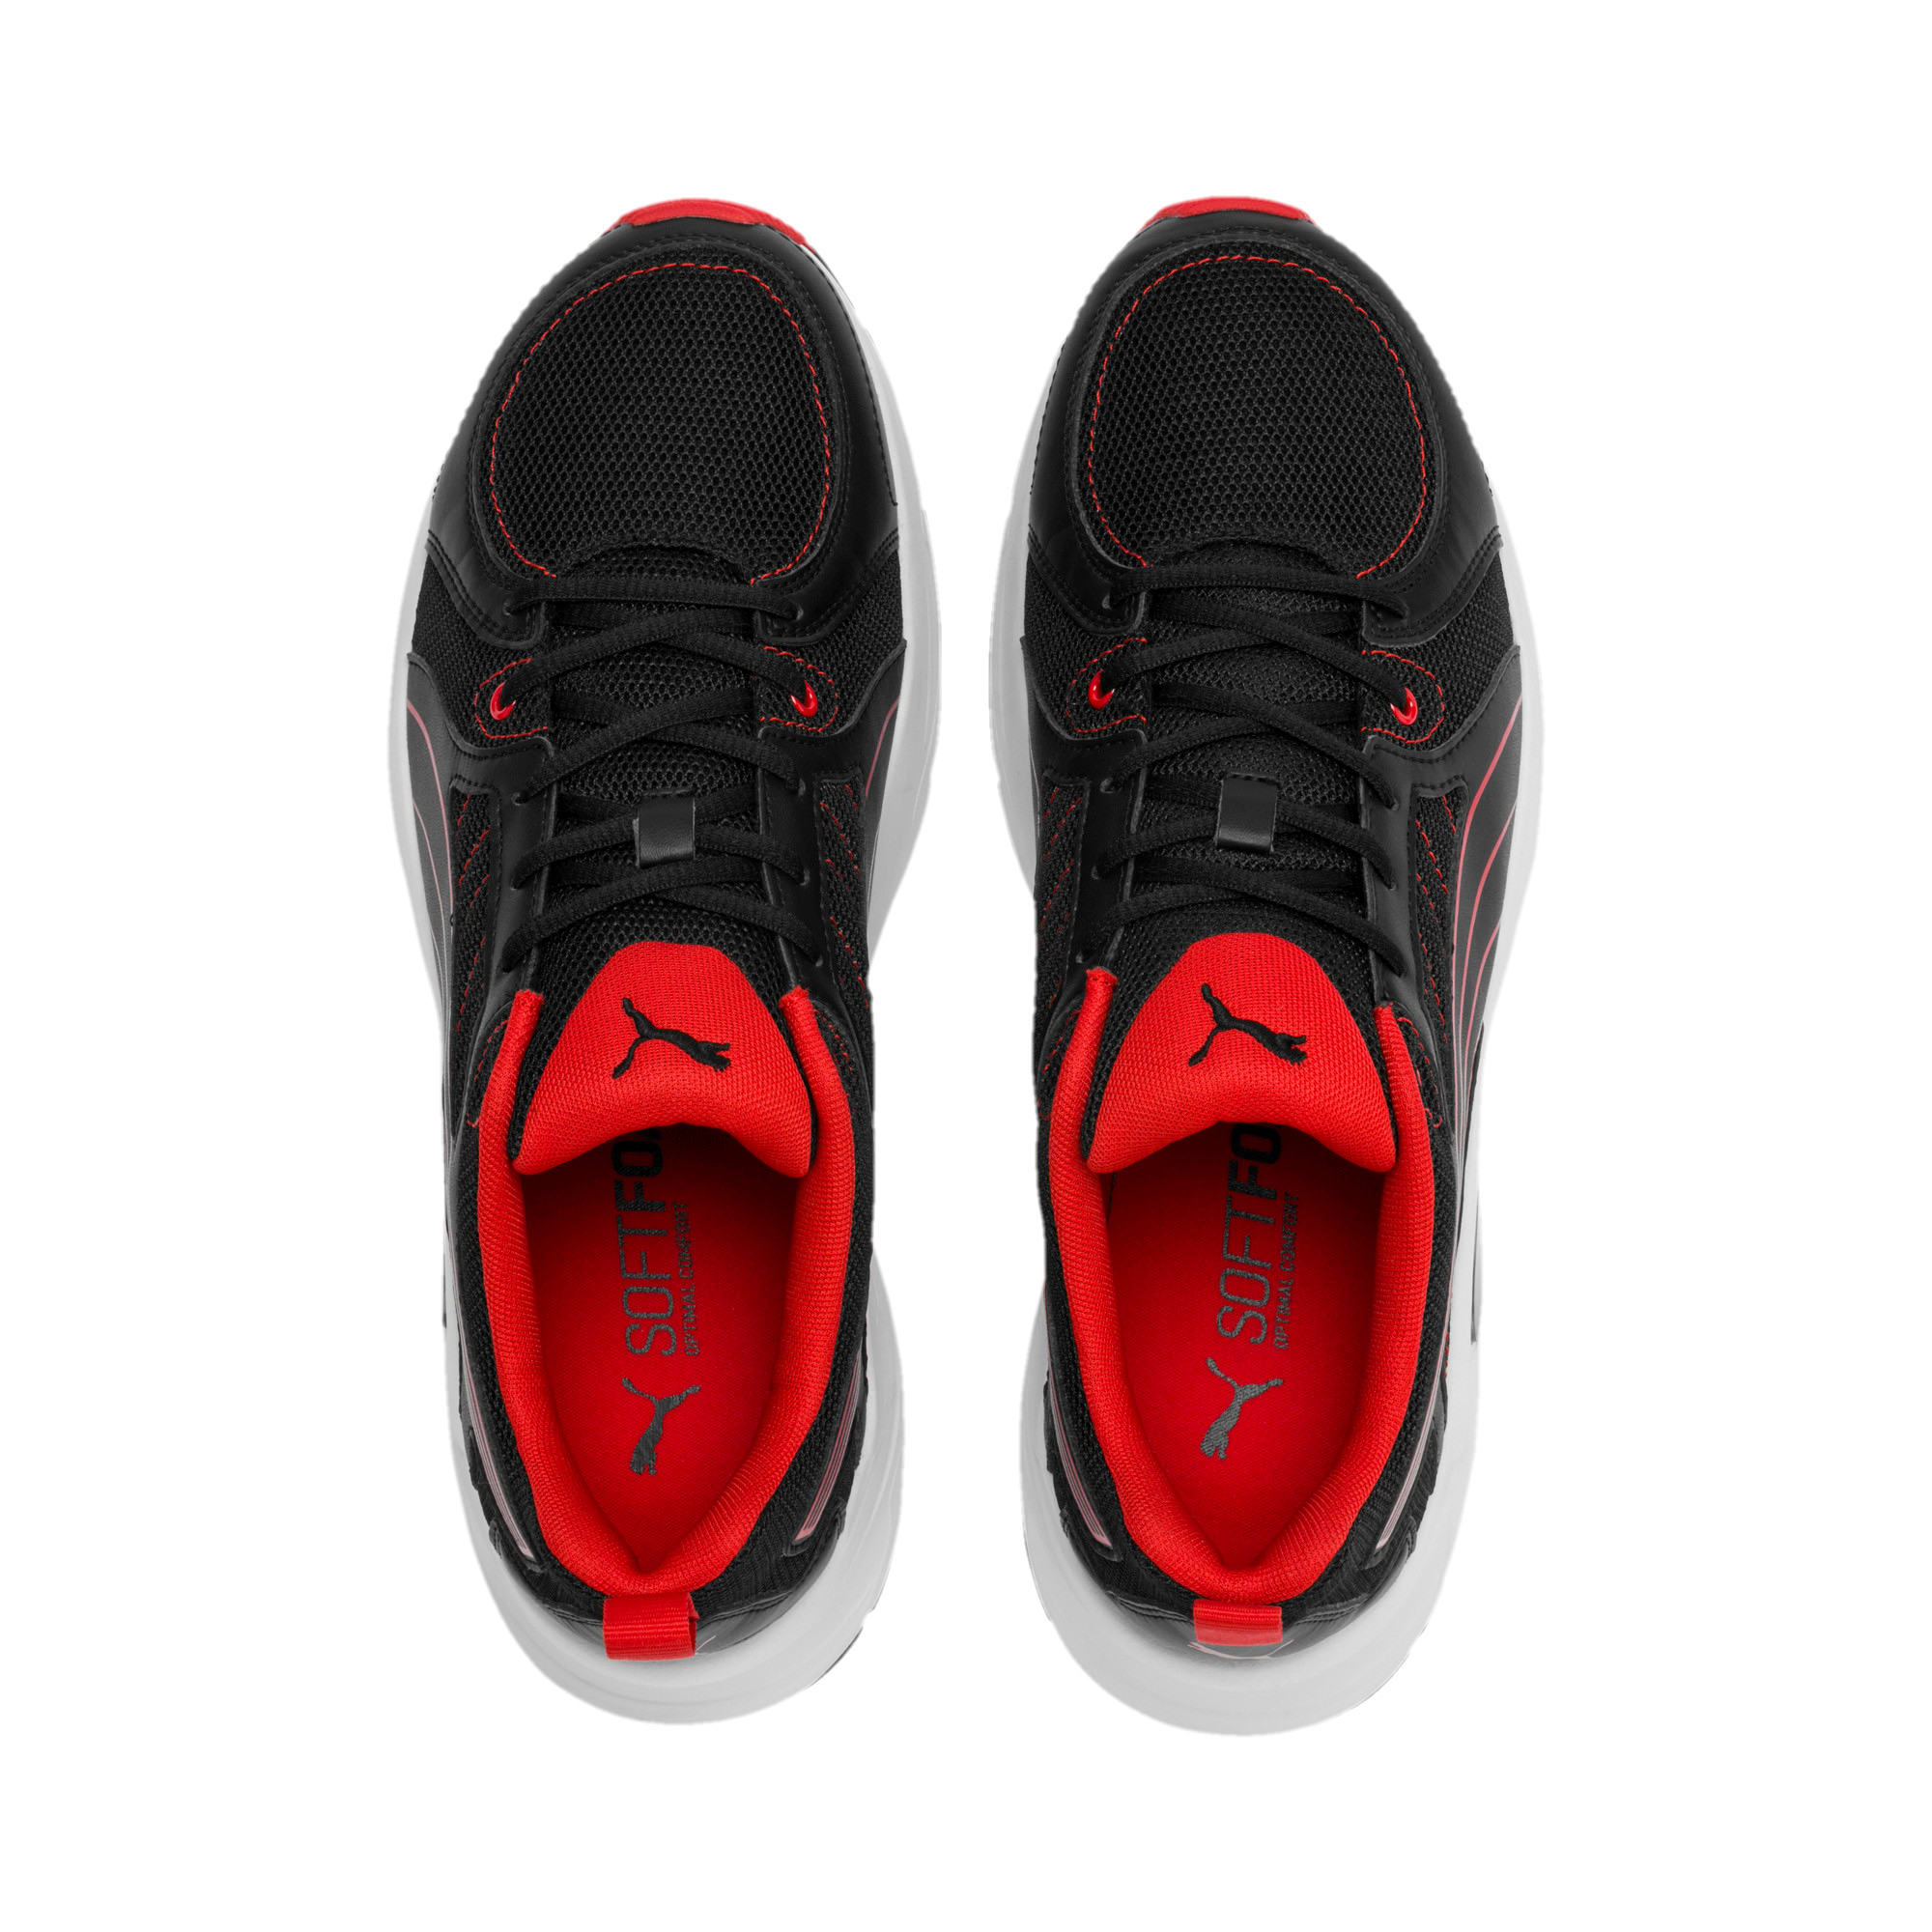 Nucleus Run Training Shoes, Puma Black-High Risk Red, large